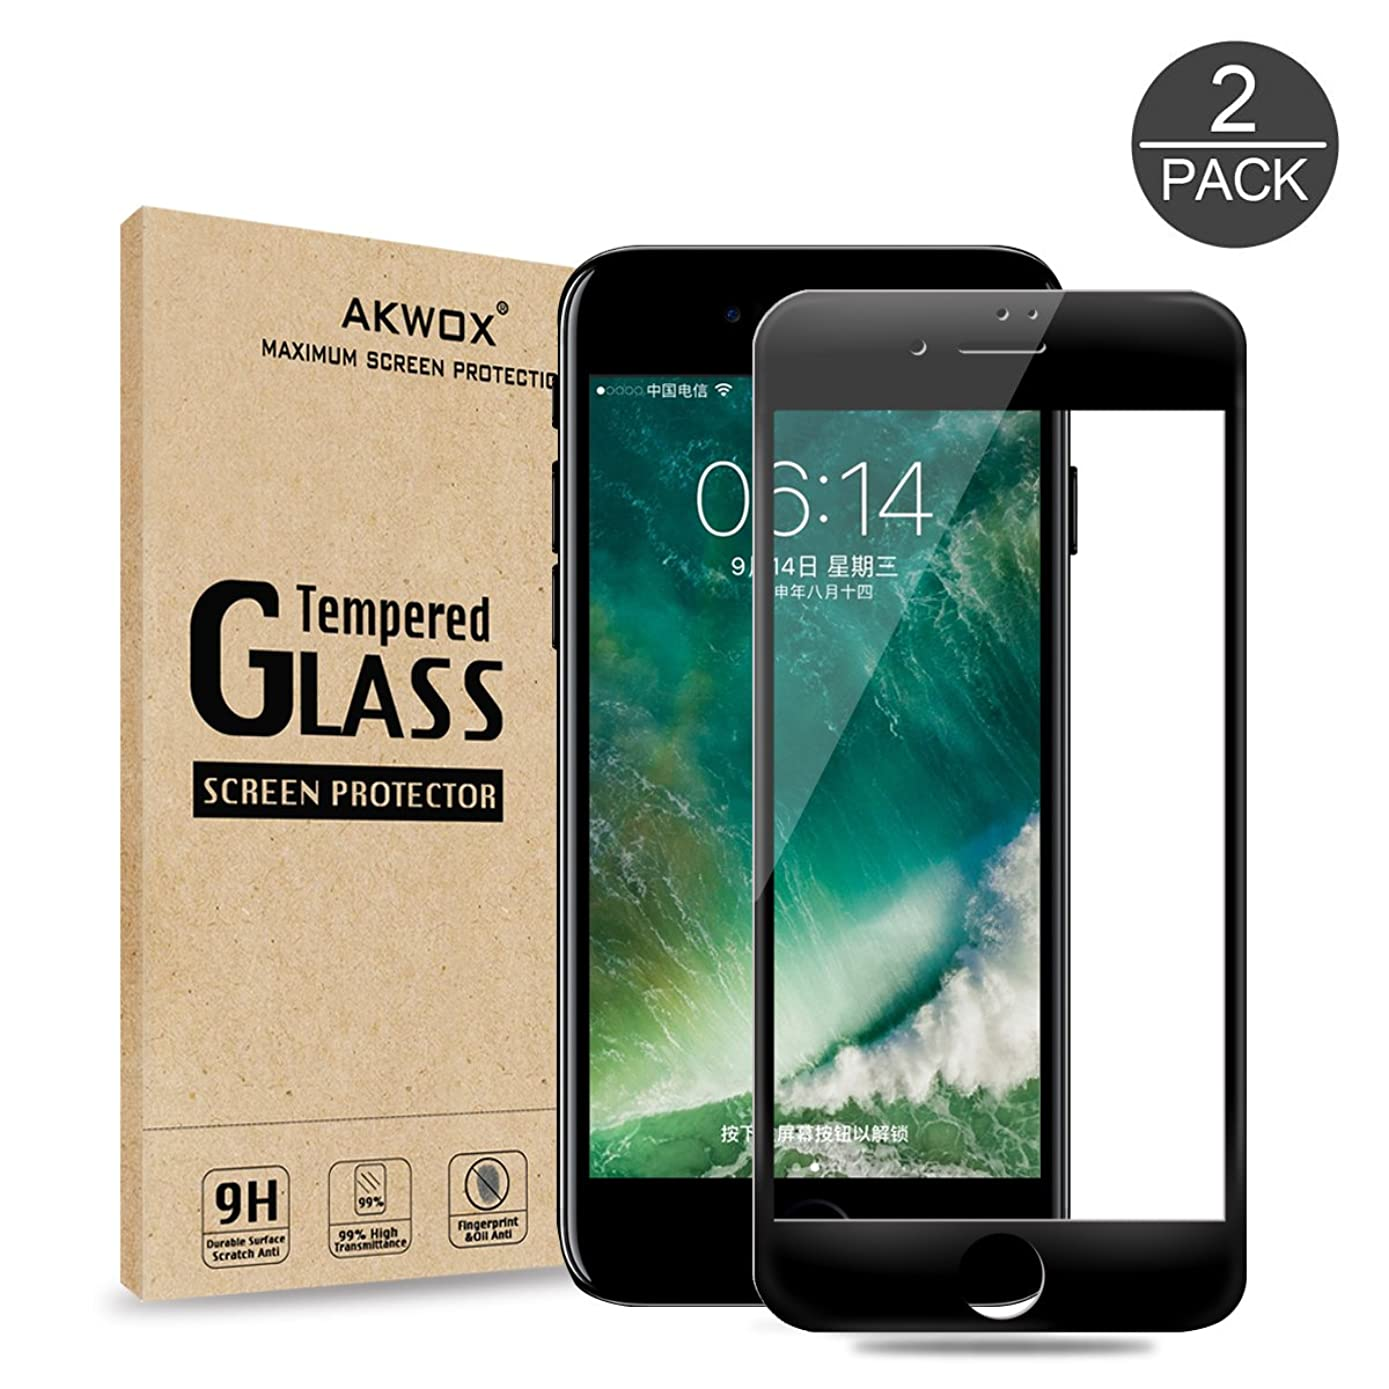 AKWOX AK-GL017BK iPhone 7 8 Screen Protector, Full Cover iPhone 7 Tempered Glass (Pack of 2), Black Edge